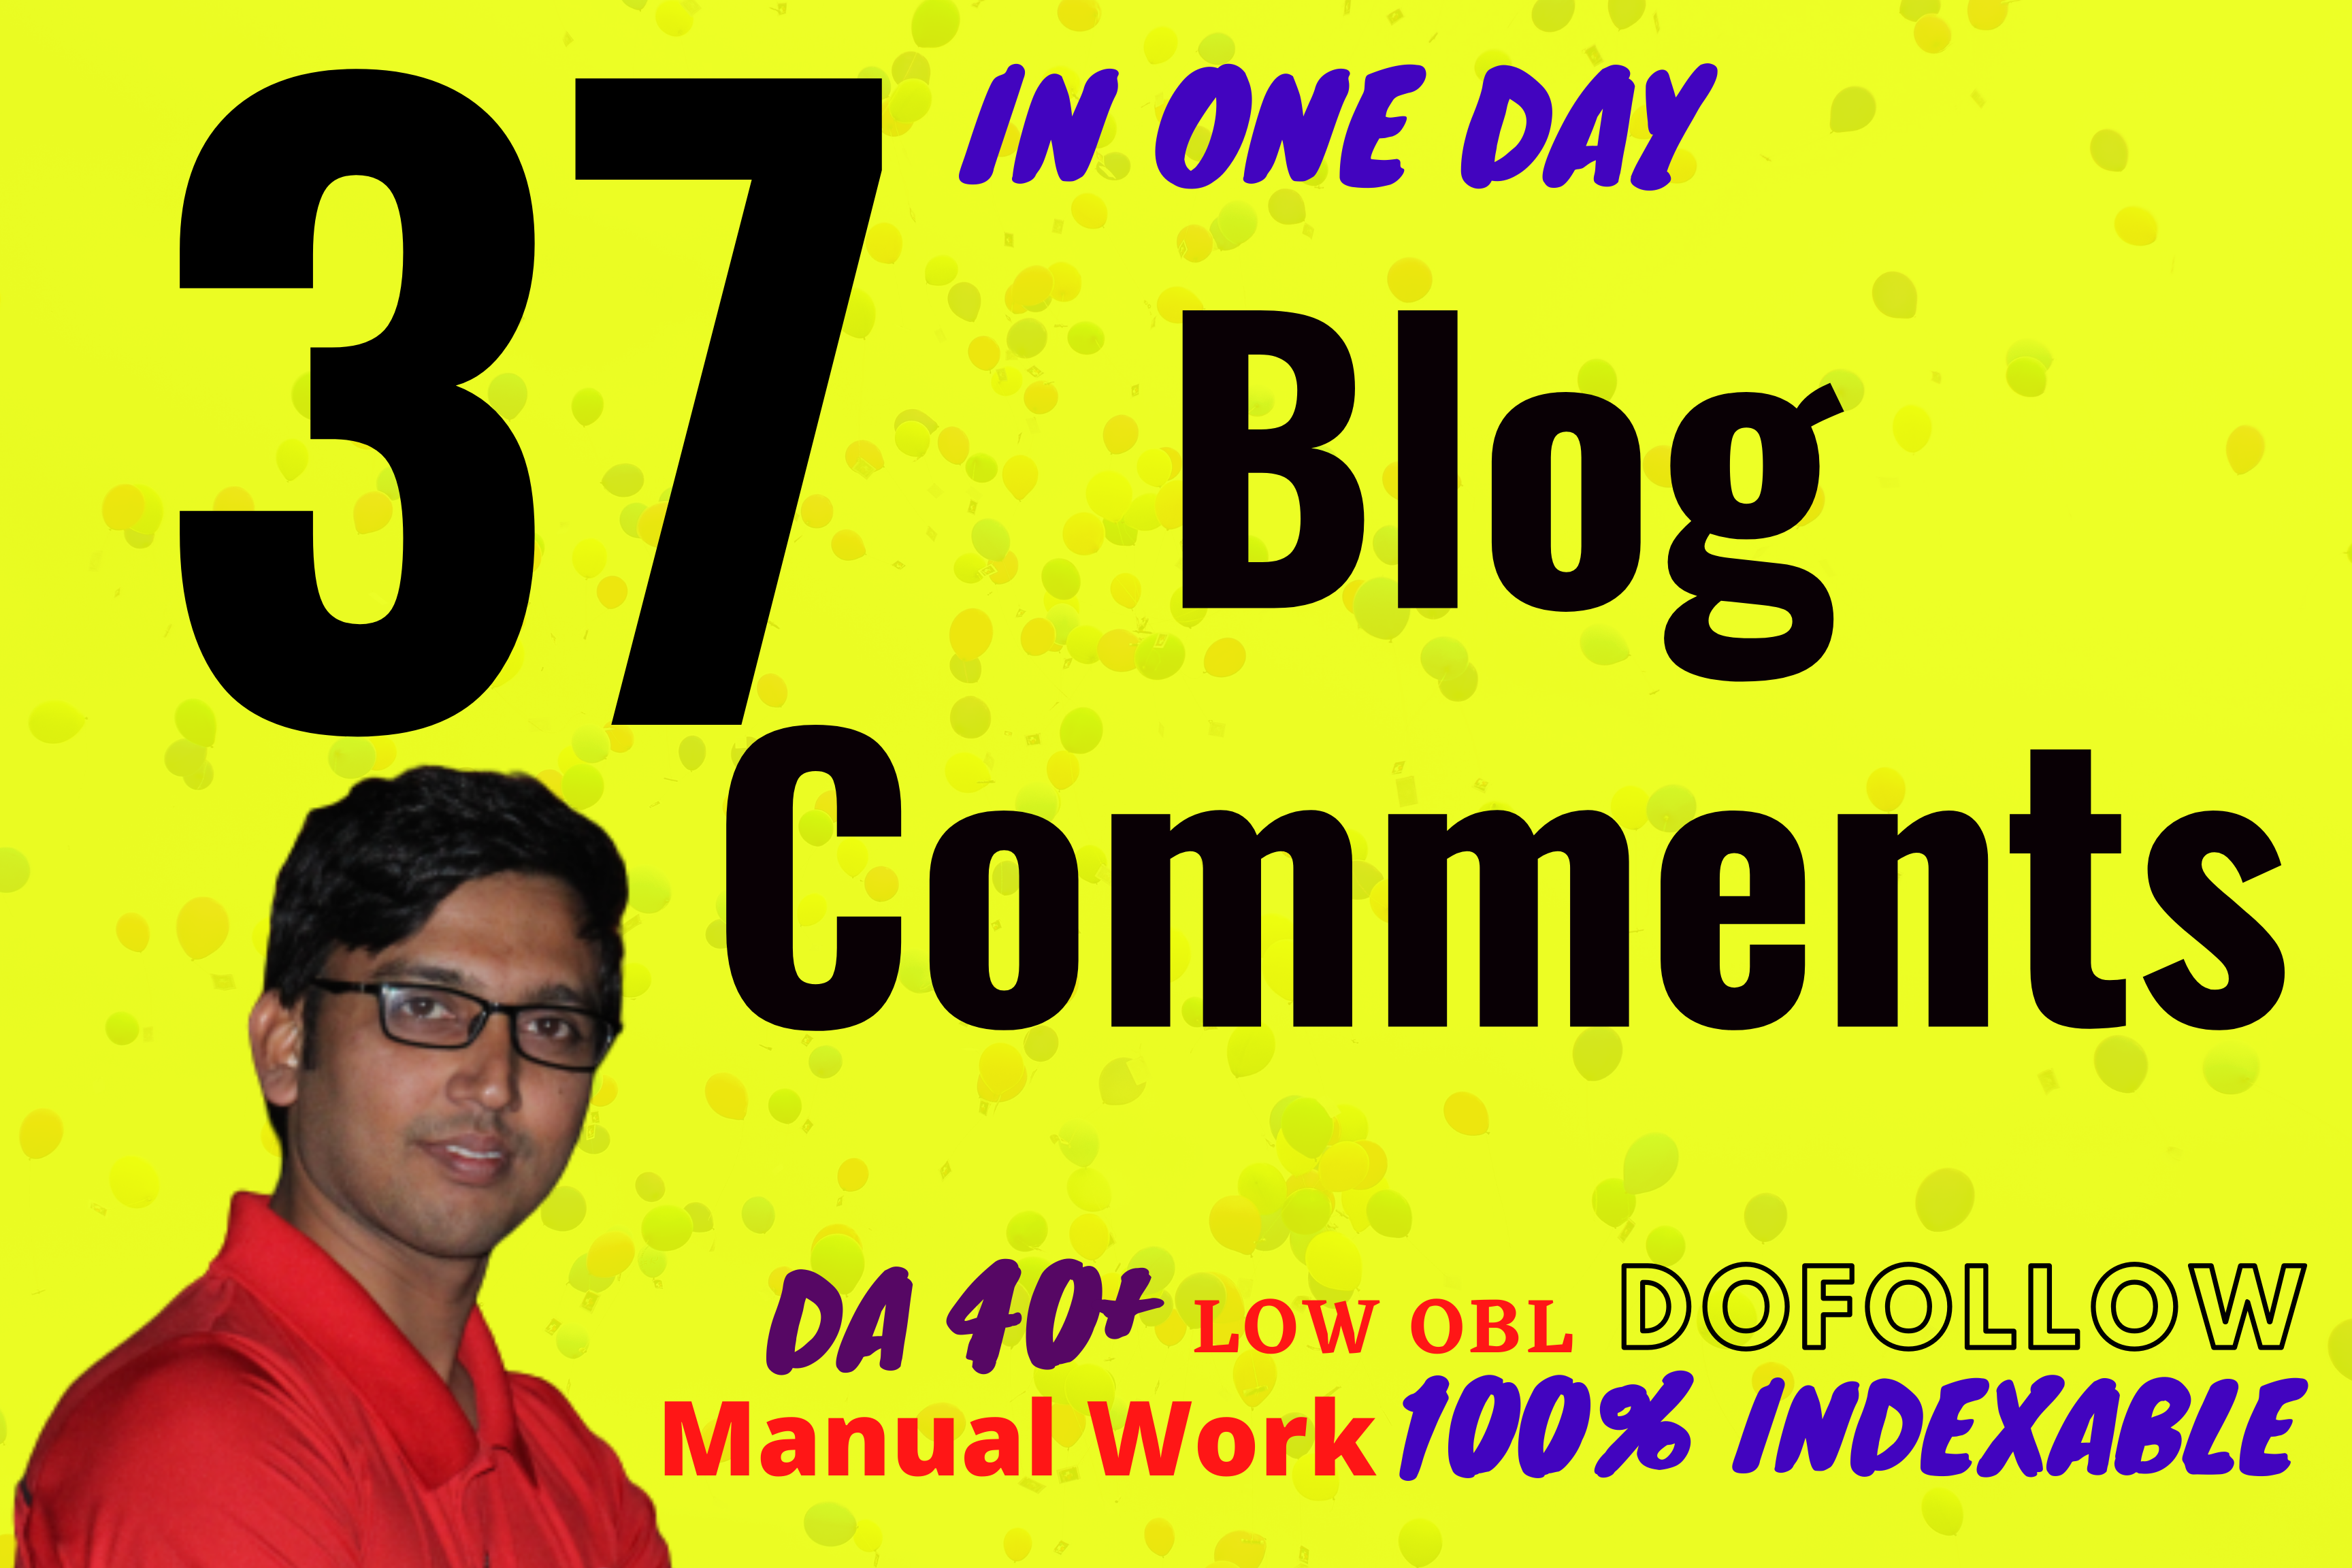 I Will Do 37 Indexable Guaranteed Manual Dofollow Blog Comments